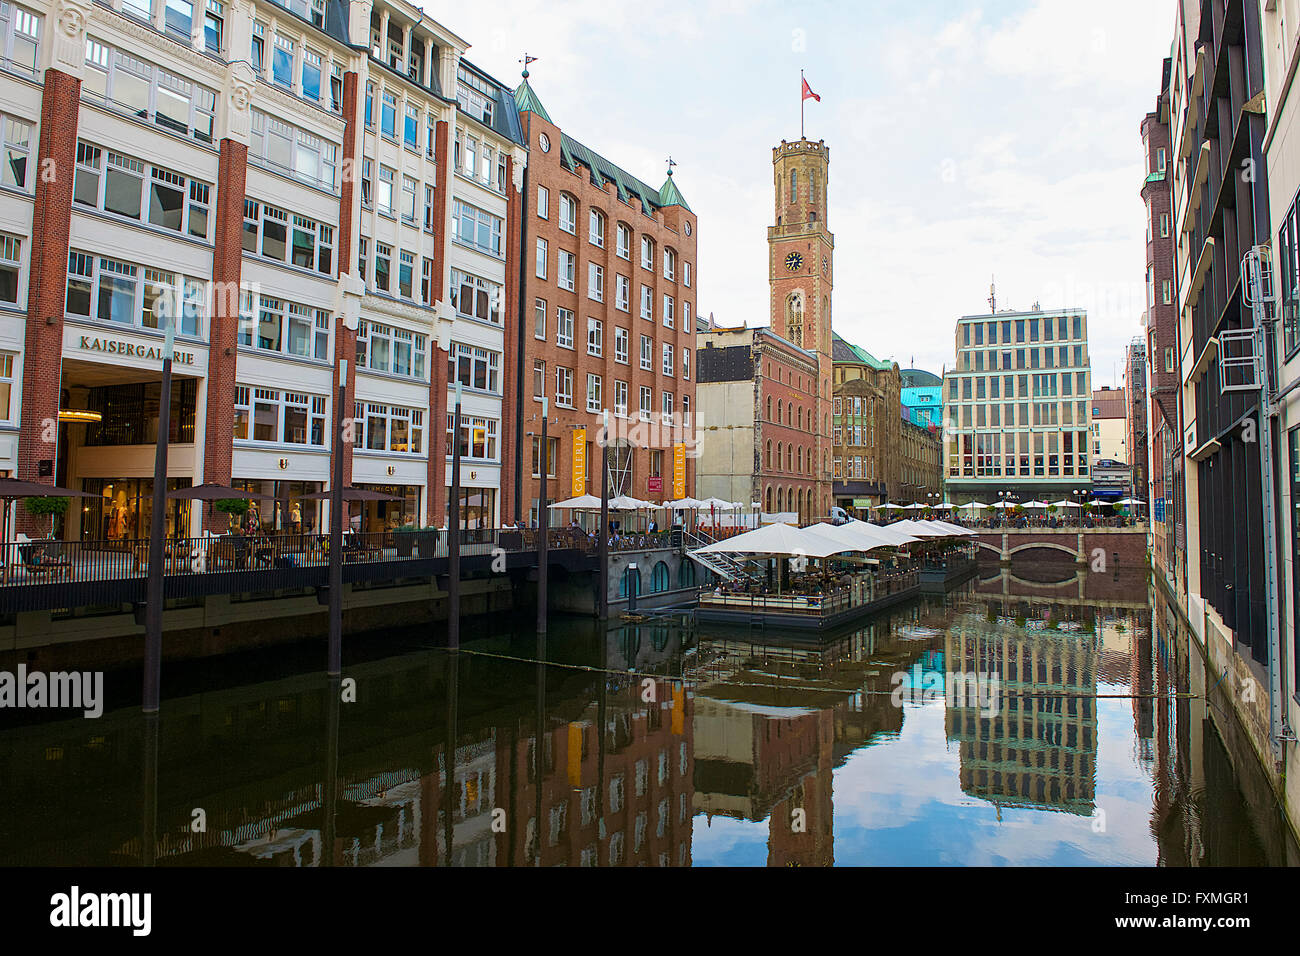 cafe canal hamburg stock photos cafe canal hamburg stock images alamy. Black Bedroom Furniture Sets. Home Design Ideas